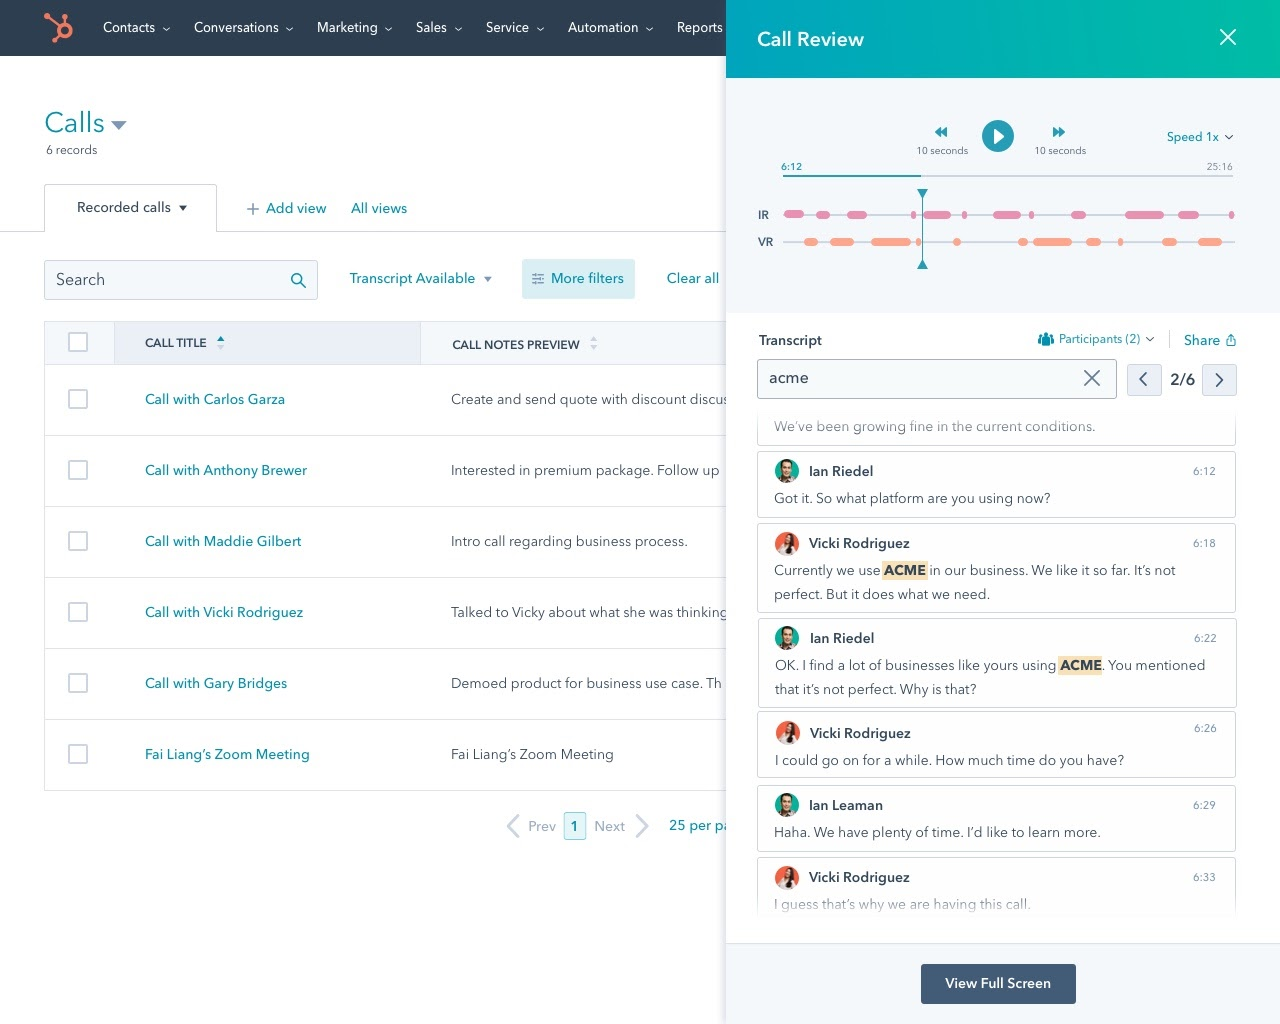 Call index - call review panel search for competitor